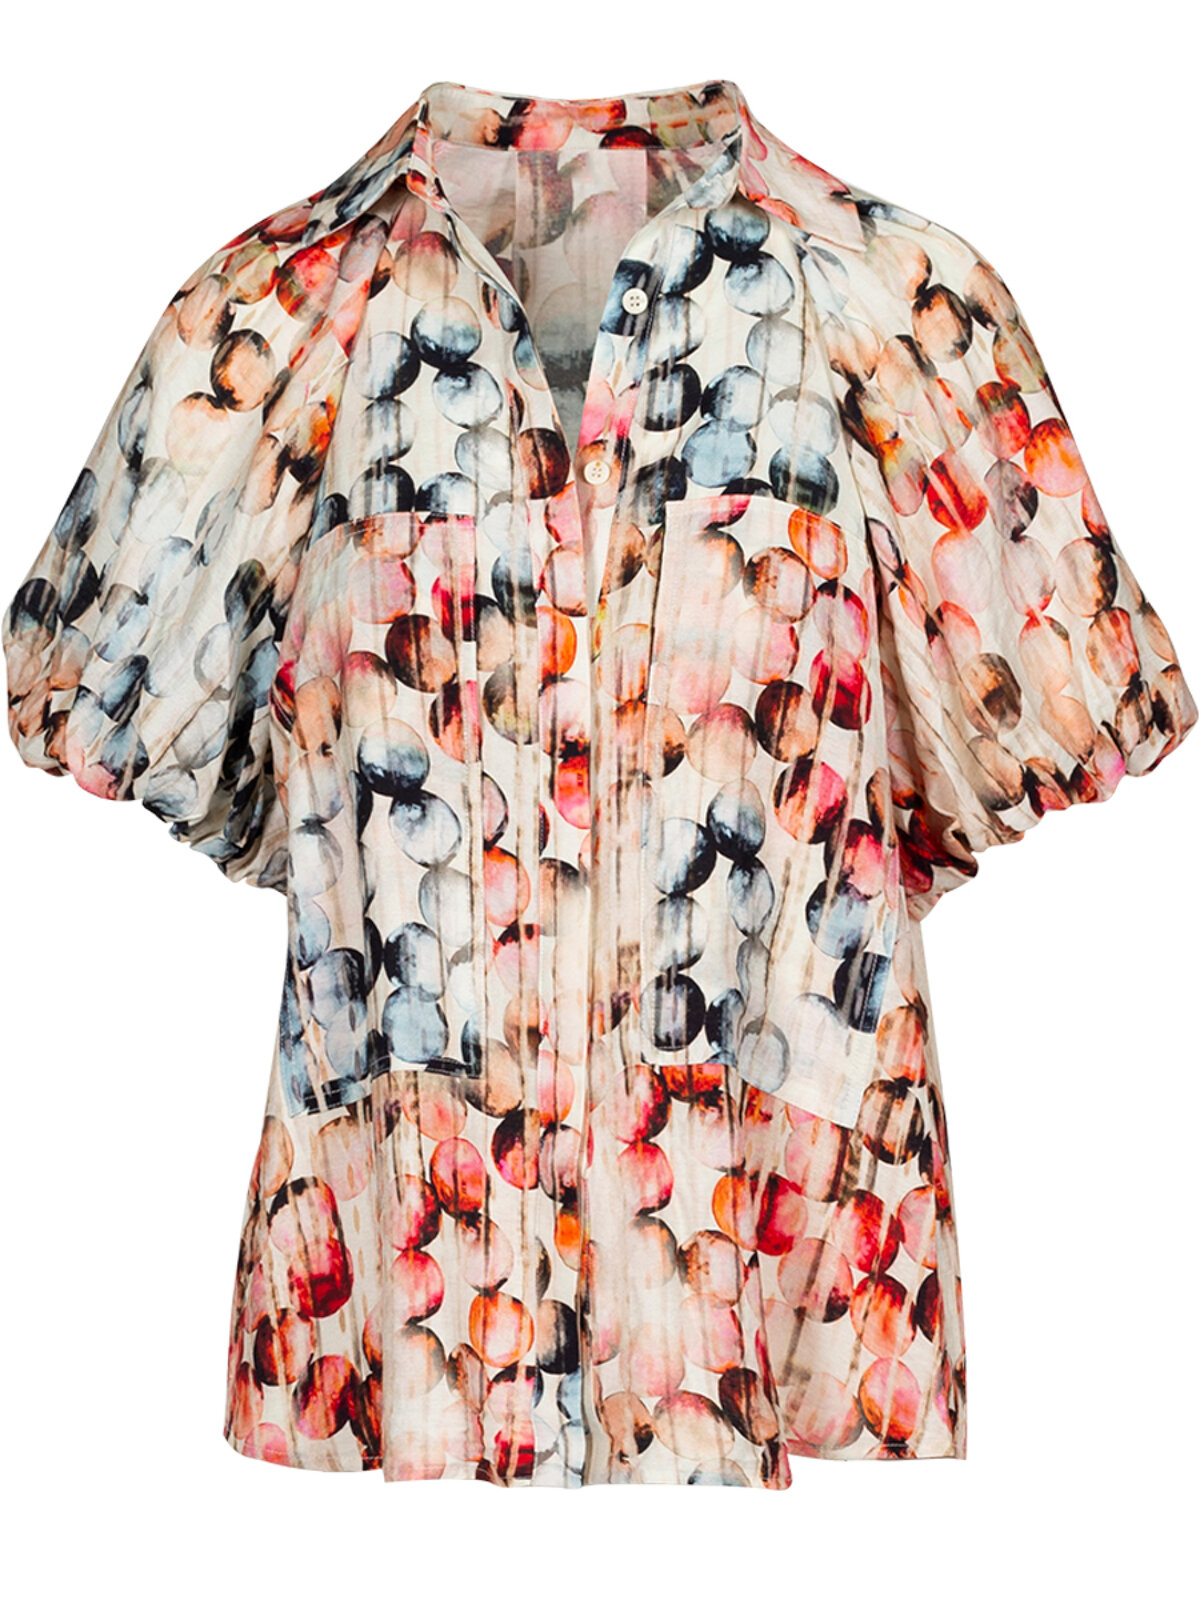 Thea Maroccan Shirt - Anonyme Designers